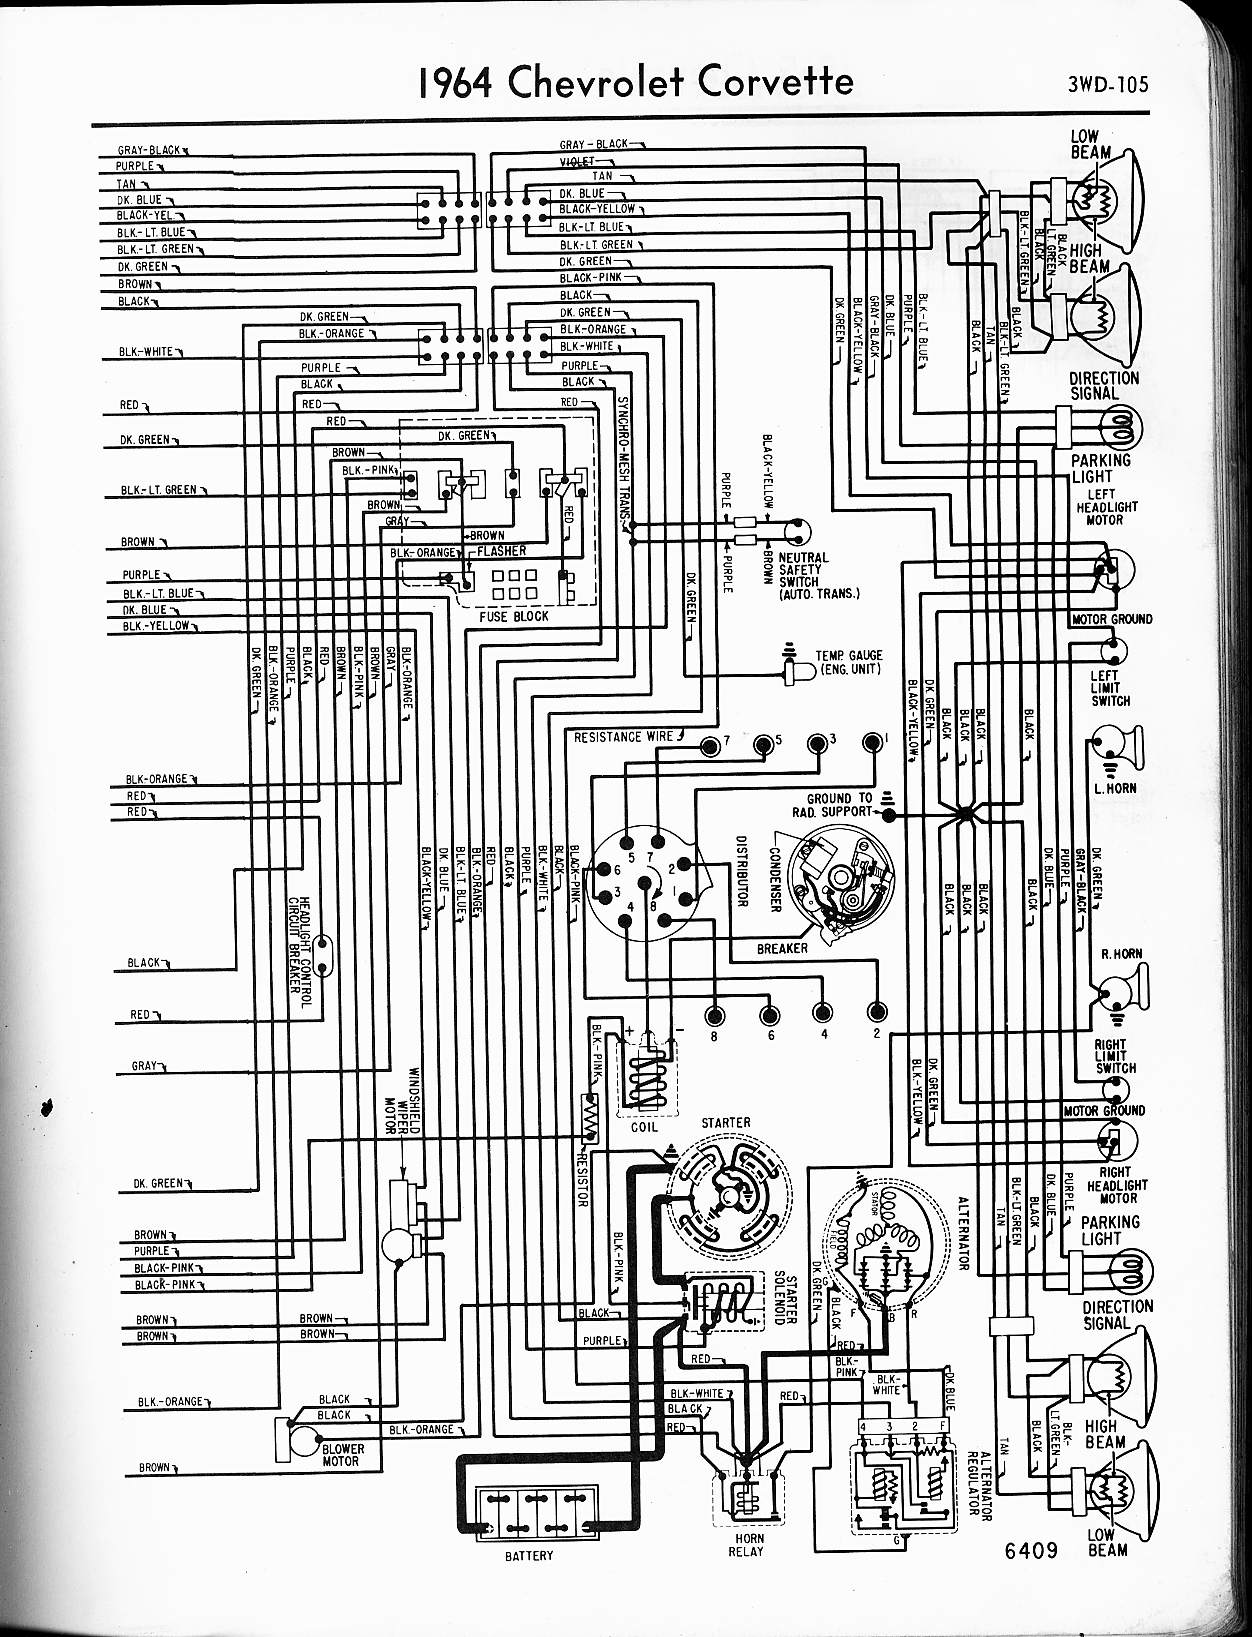 Chevrolet Headlight Wiring Diagram 1973 Guide And Troubleshooting Typical Turn Signal Diagrams 57 65 Chevy Rh Oldcarmanualproject Com Sealed Beam Basic